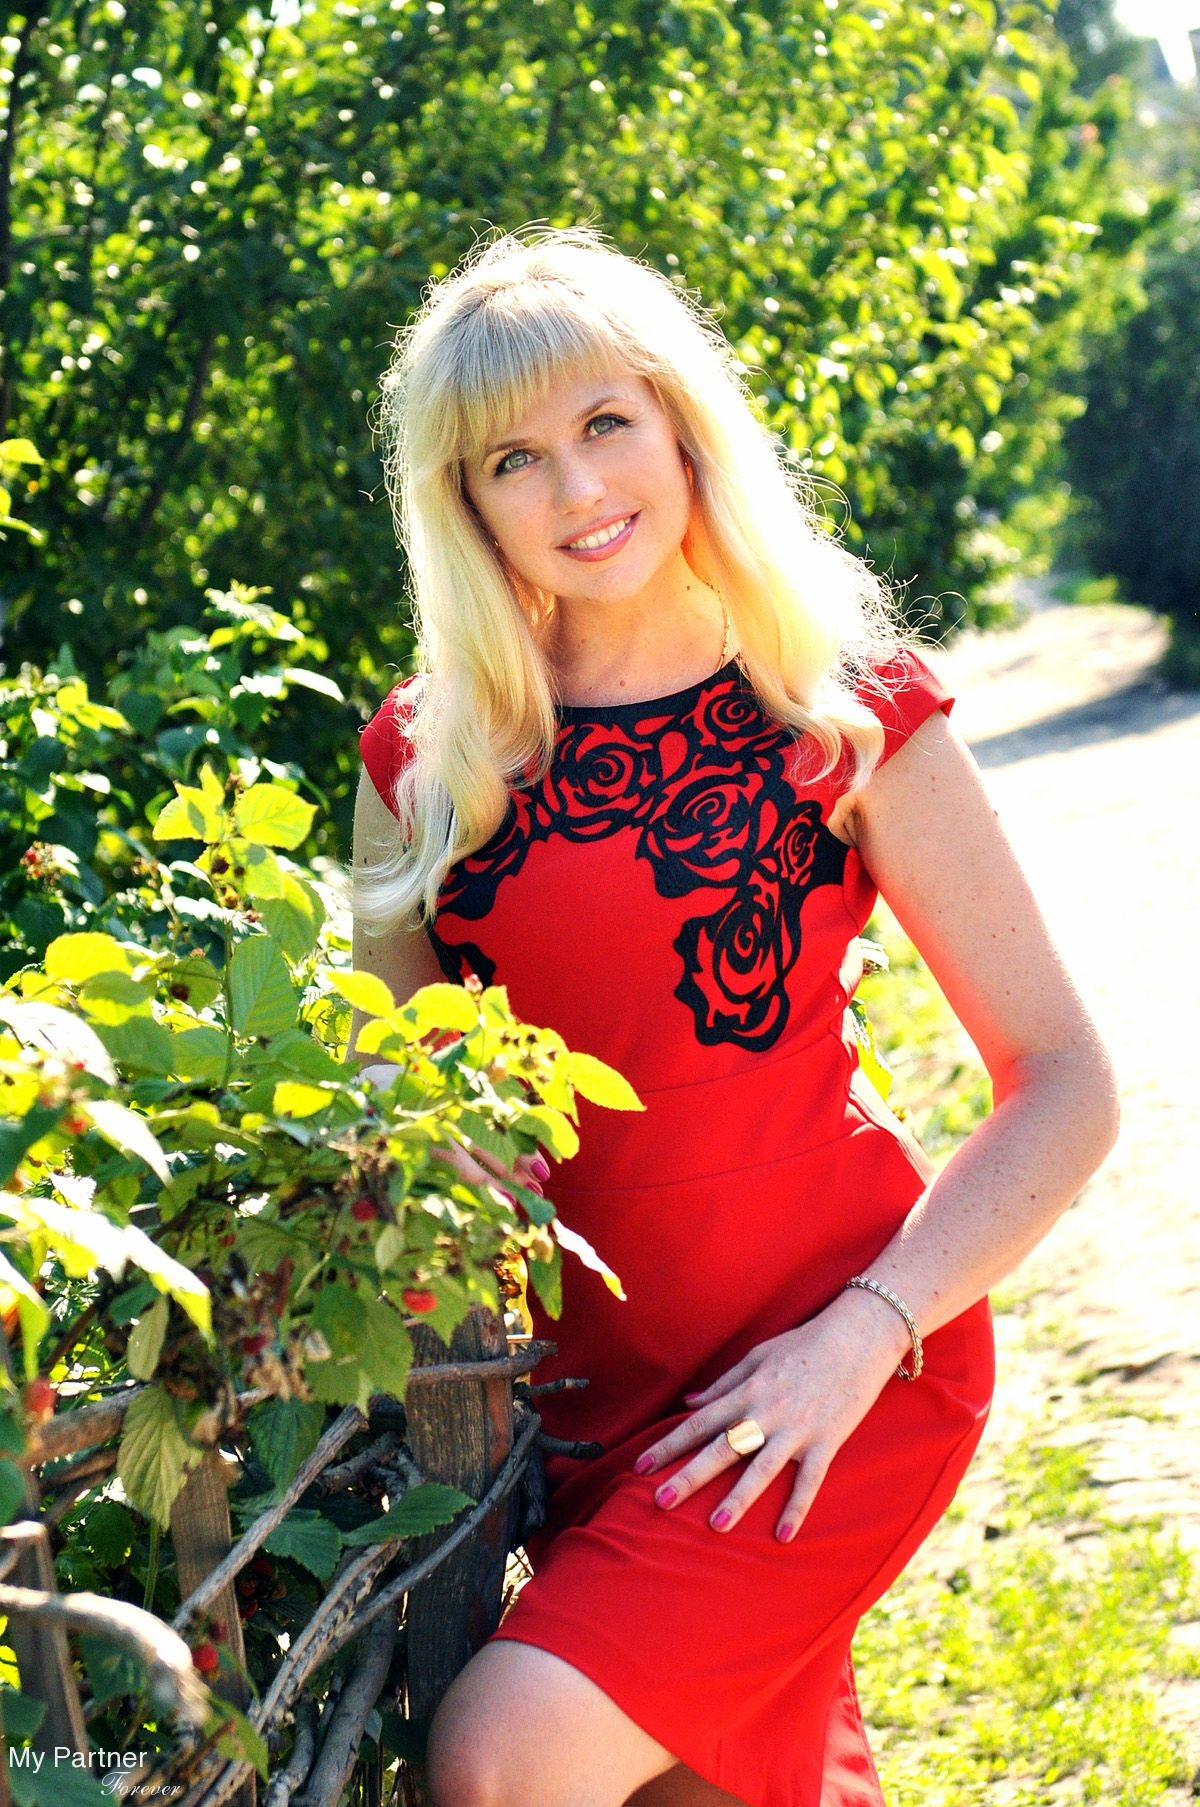 Stunning Woman from Ukraine - Tatiyana from Kharkov, Ukraine